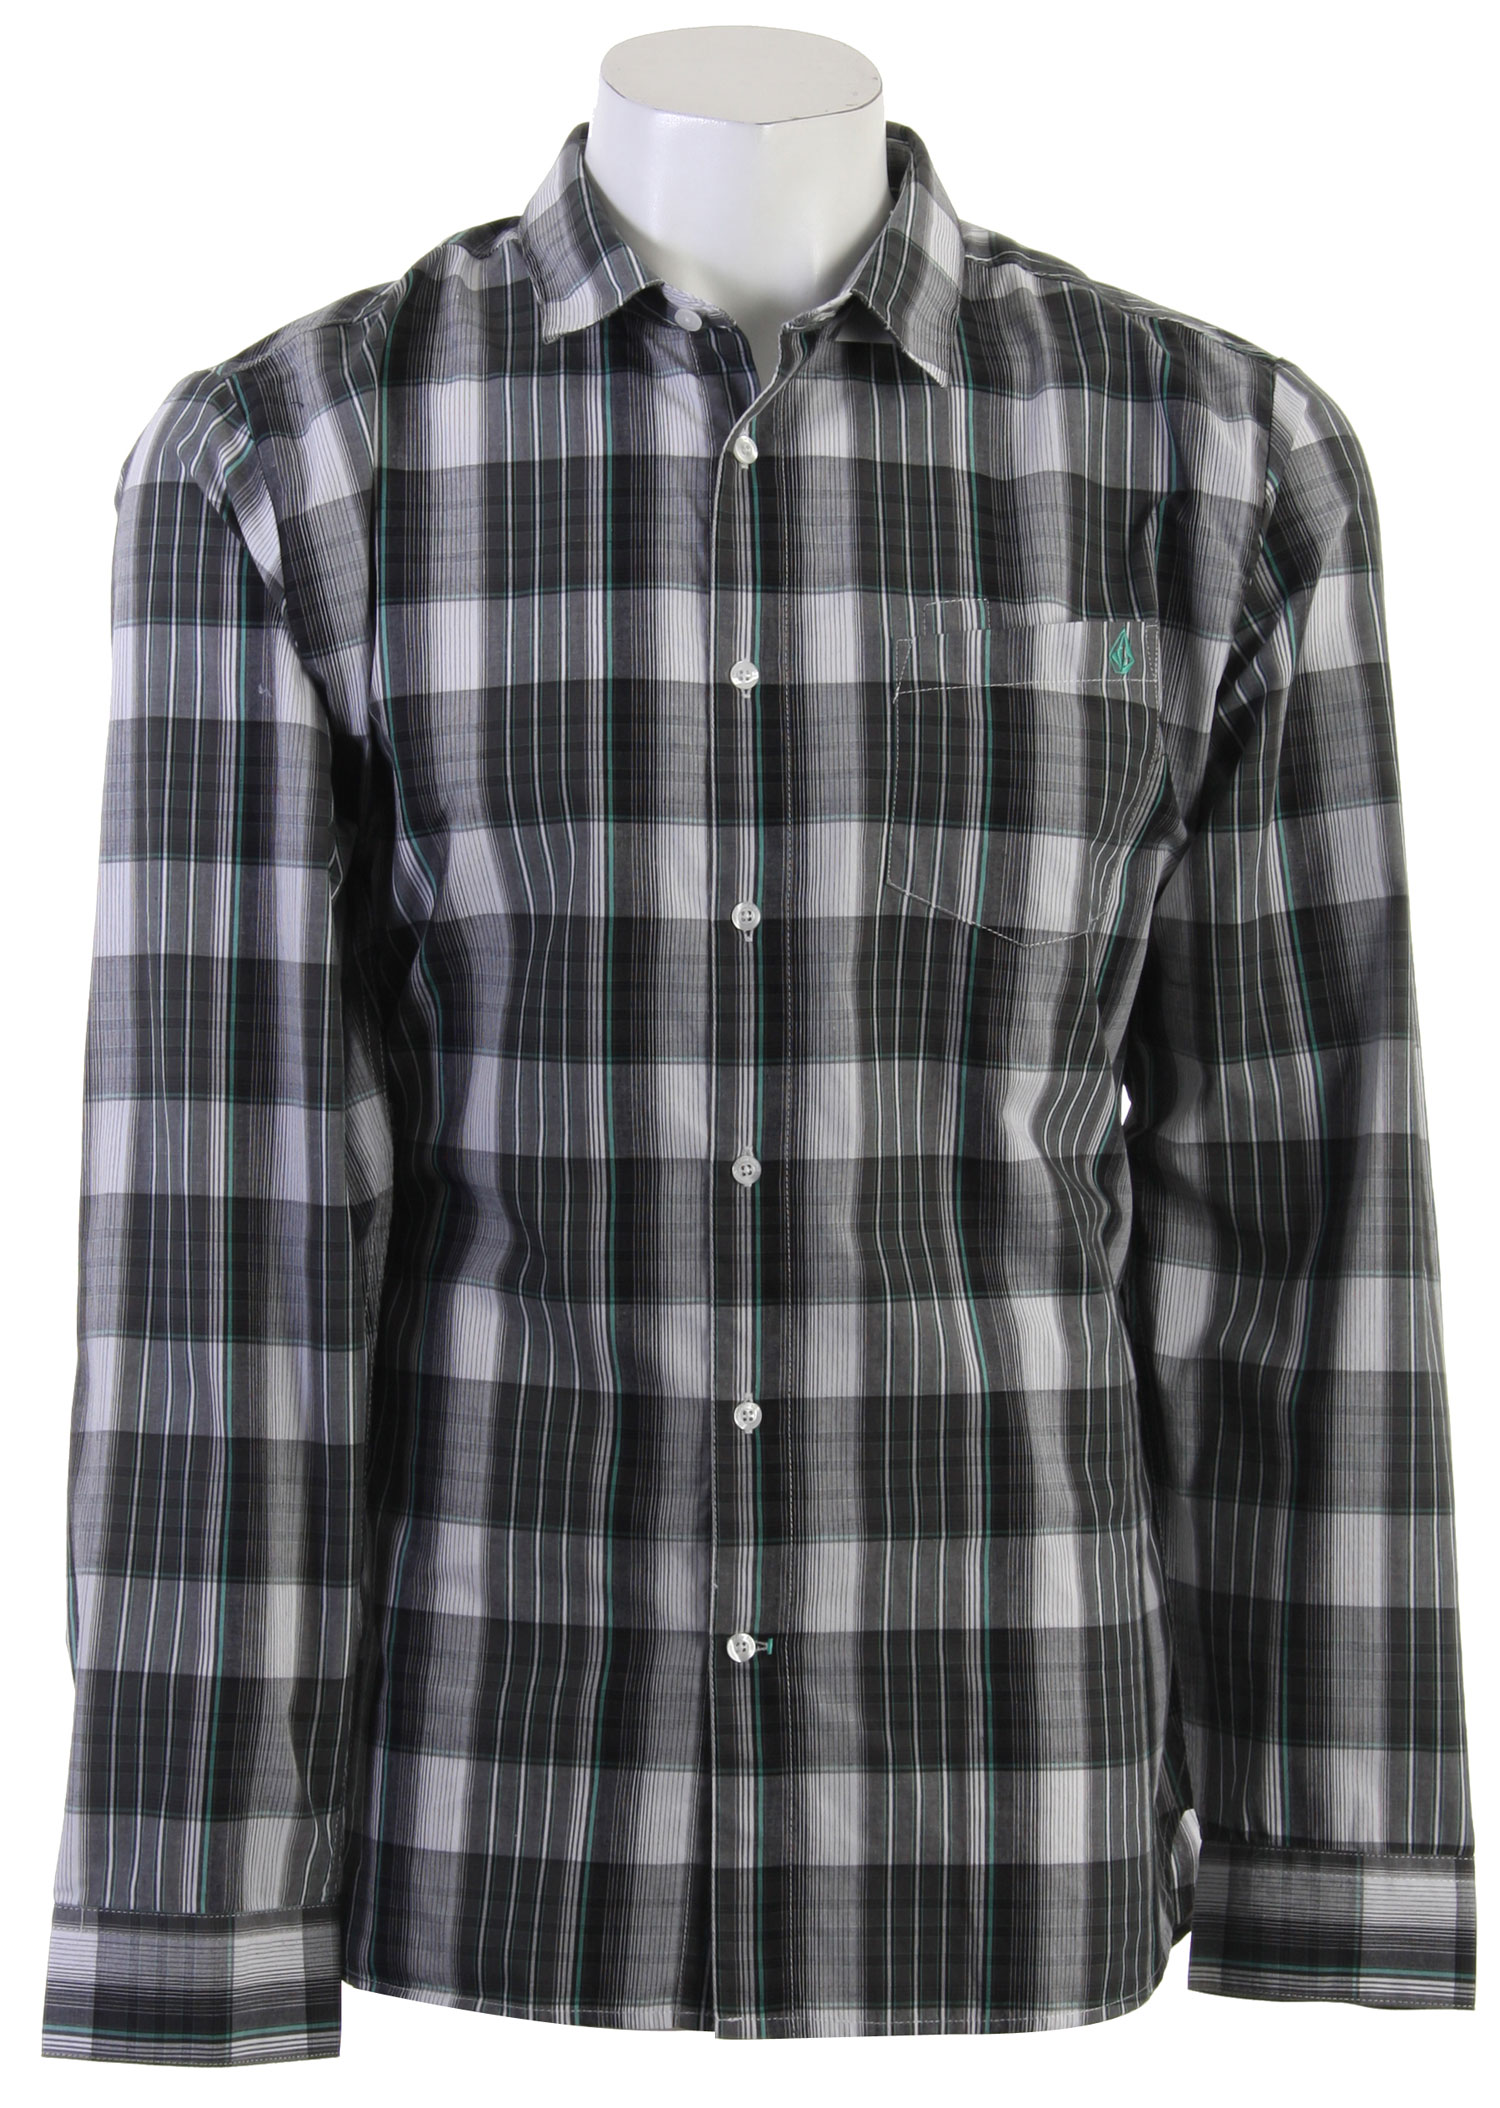 Surf Key Features of the Volcom X Factor Plaid L/S Shirt: Classic Fit Shirt With Contrast Inner Yoke Pen Slot Detail at Pocket, and Stone Embroidery Garment Wash Corpo Collection - $25.95